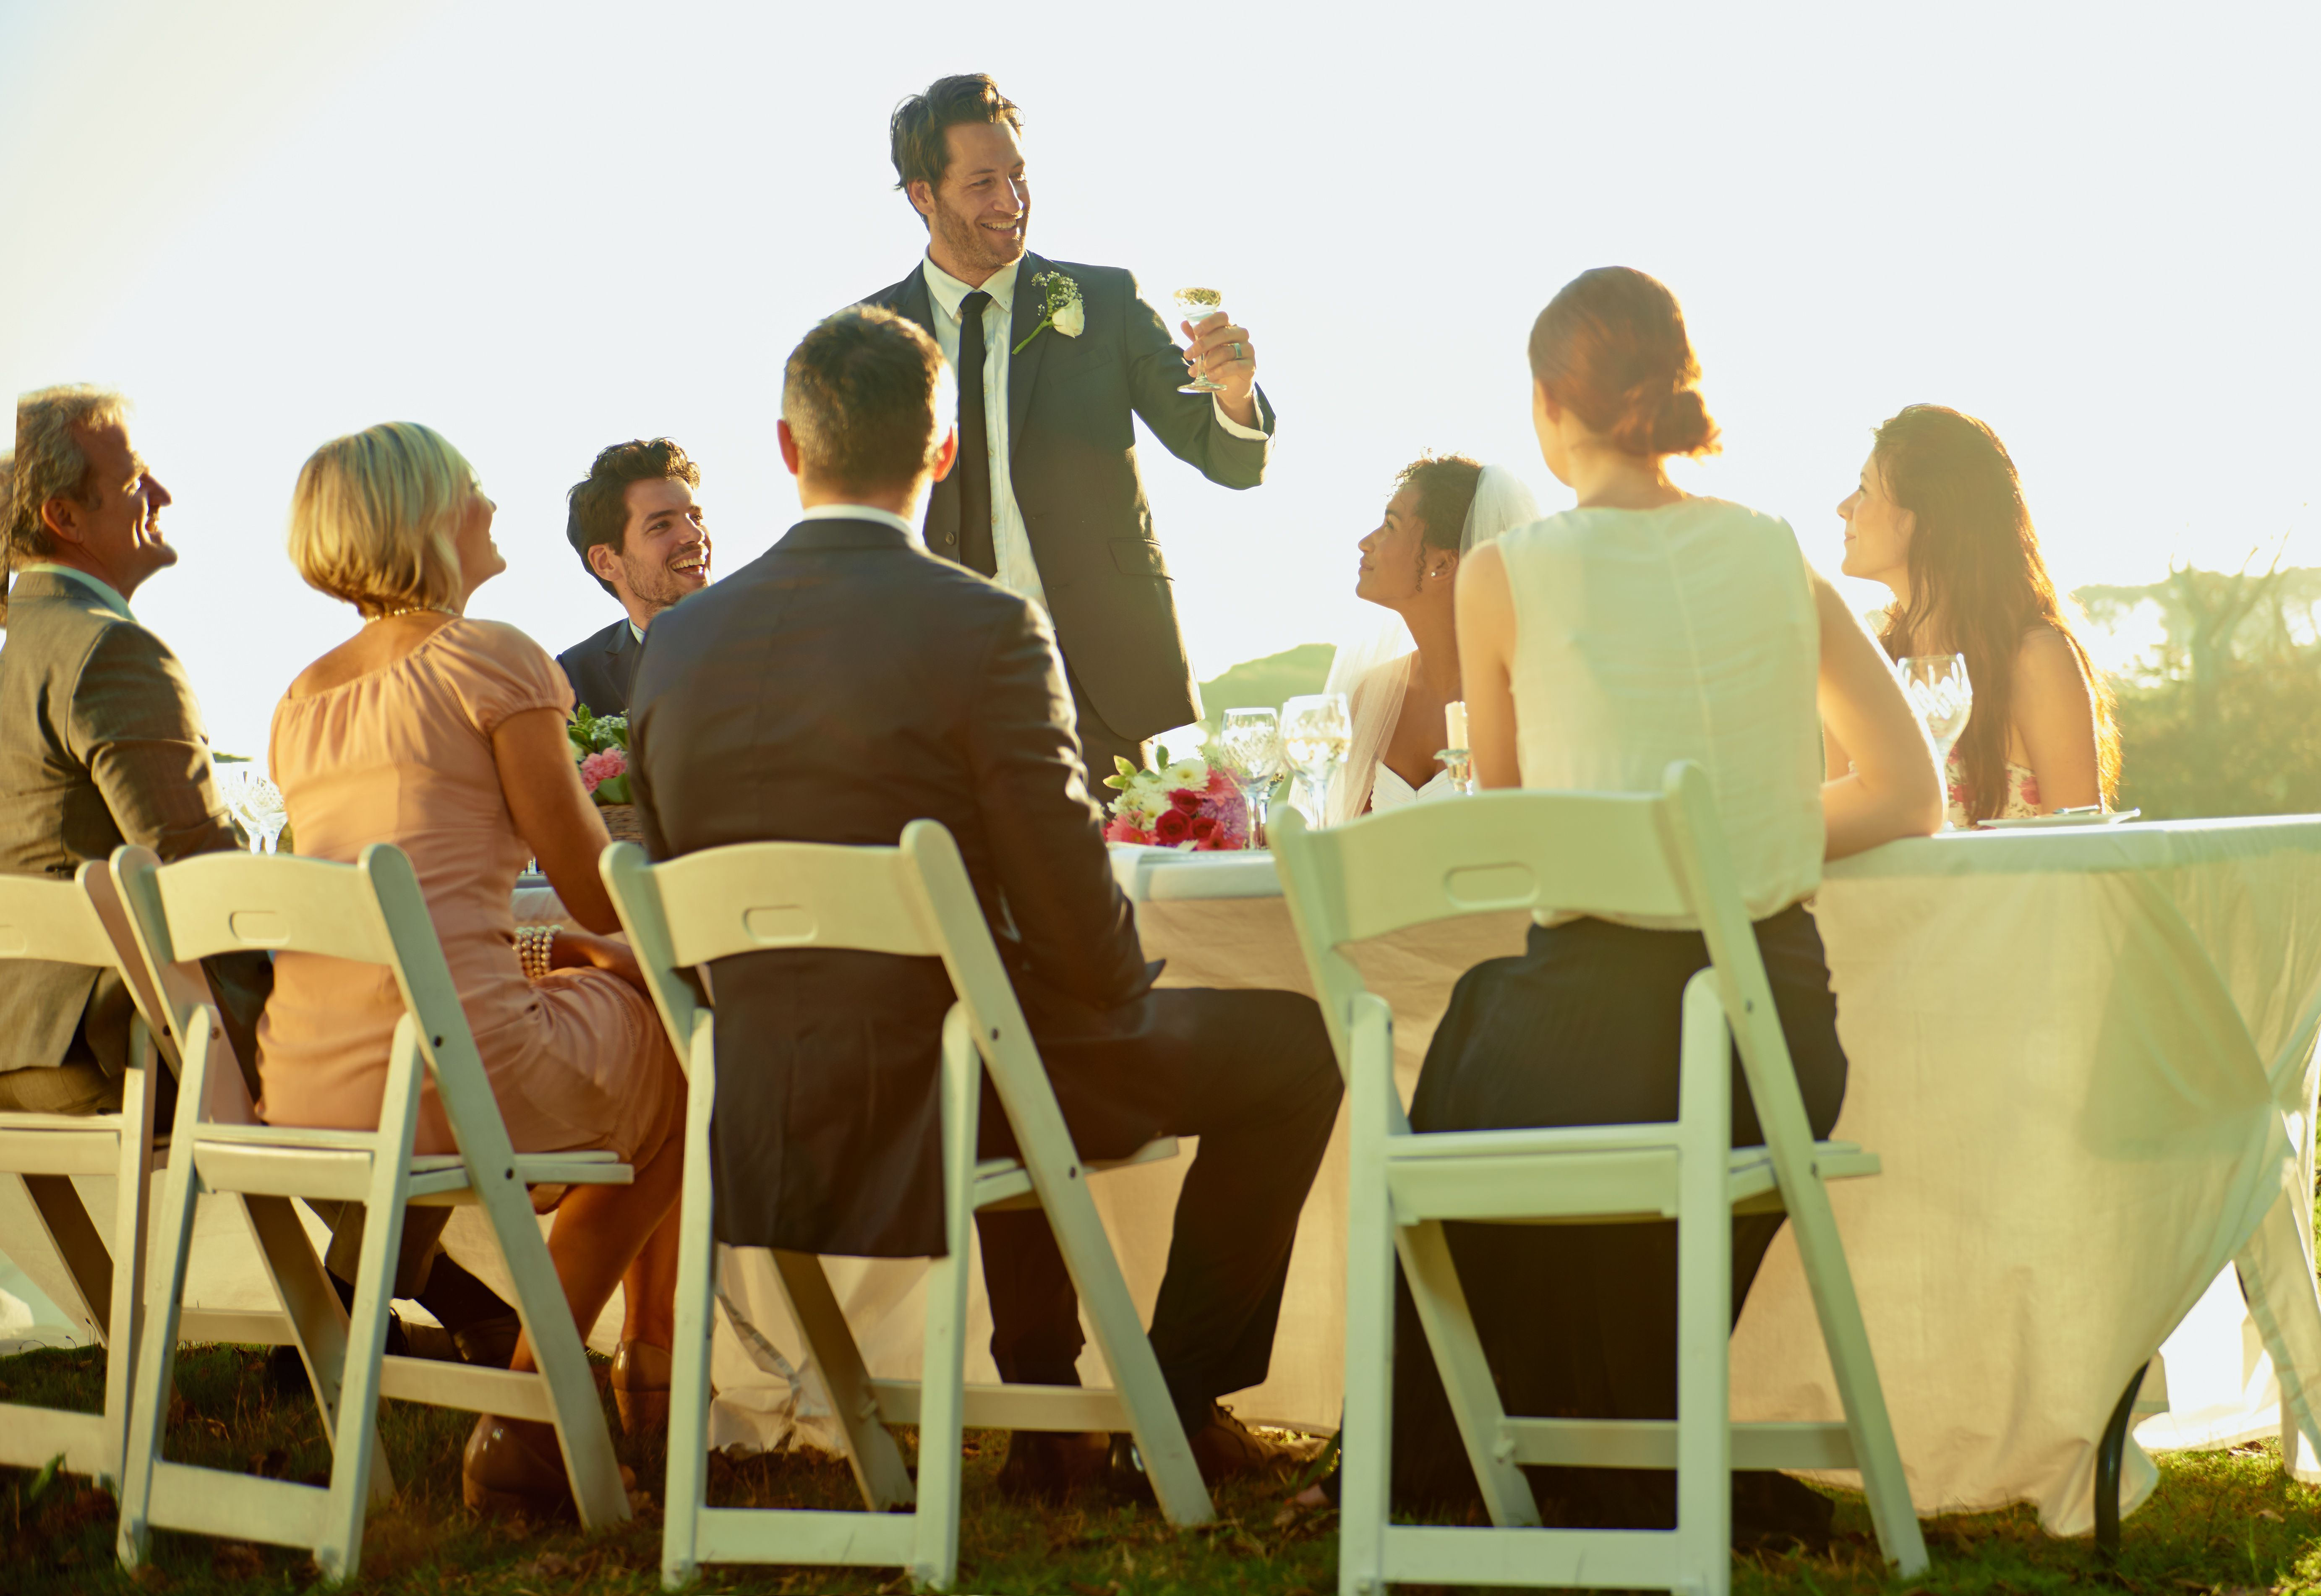 Timeless Wedding Toasts For The Bride And Groom